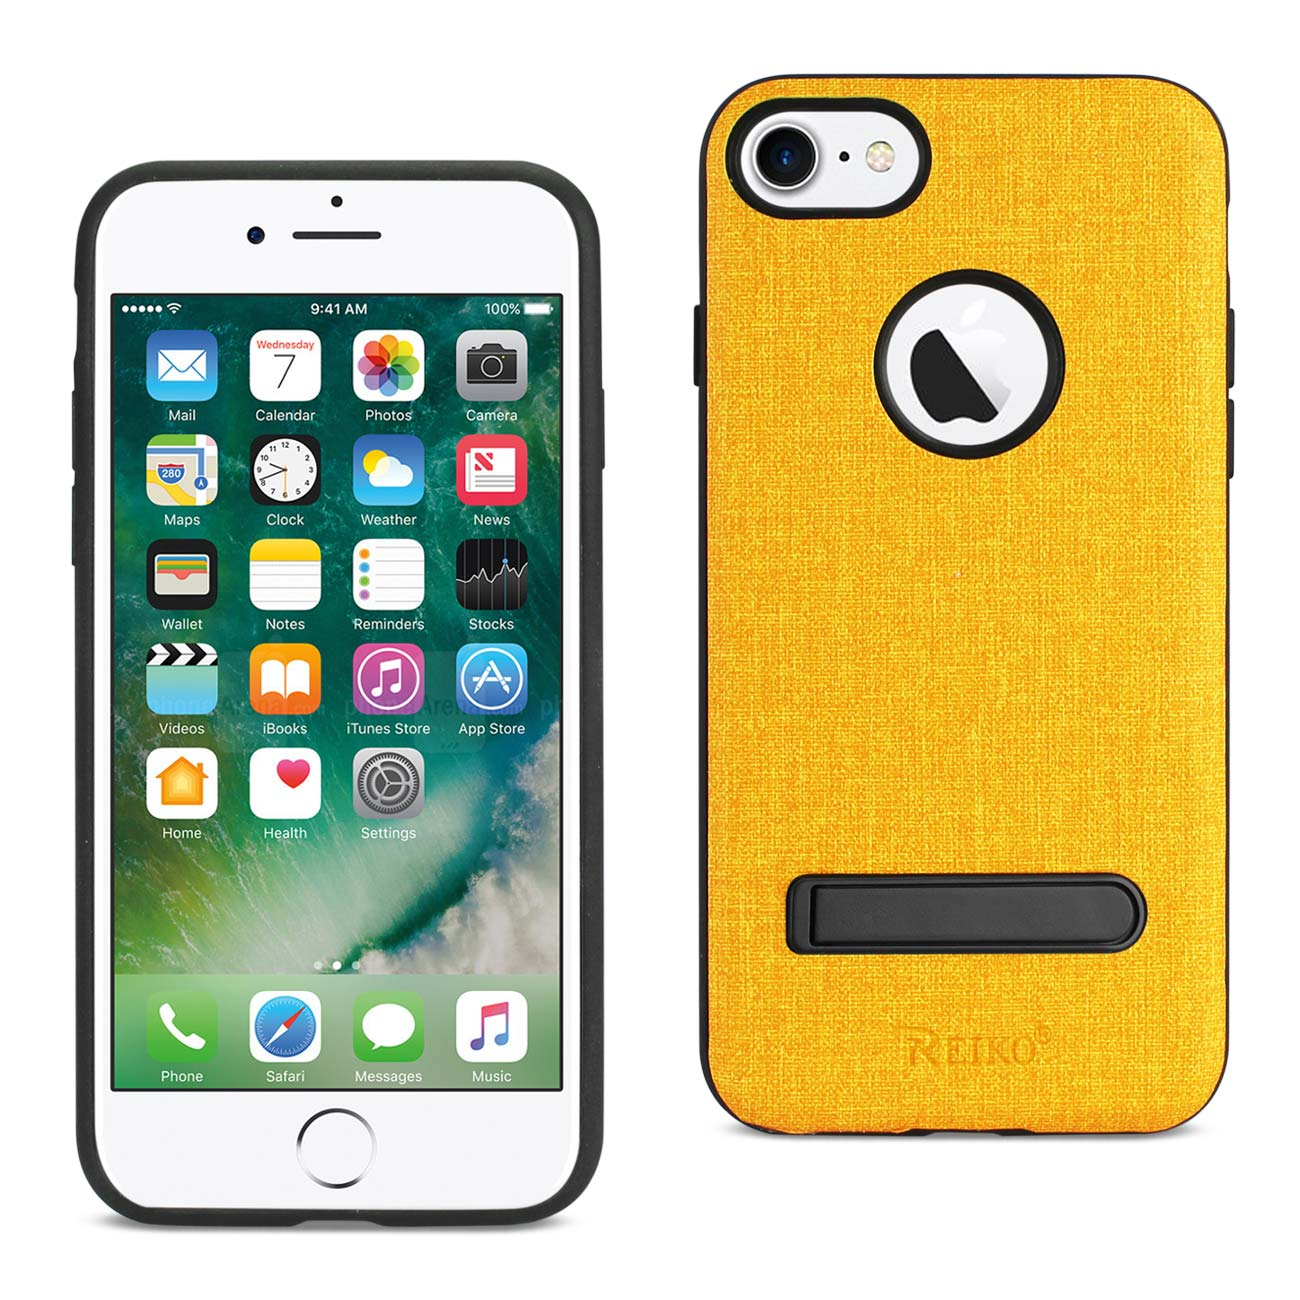 REIKO IPHONE 7/ 6/ 6S DENIM TEXTURE TPU PROTECTOR COVER IN YELLOW